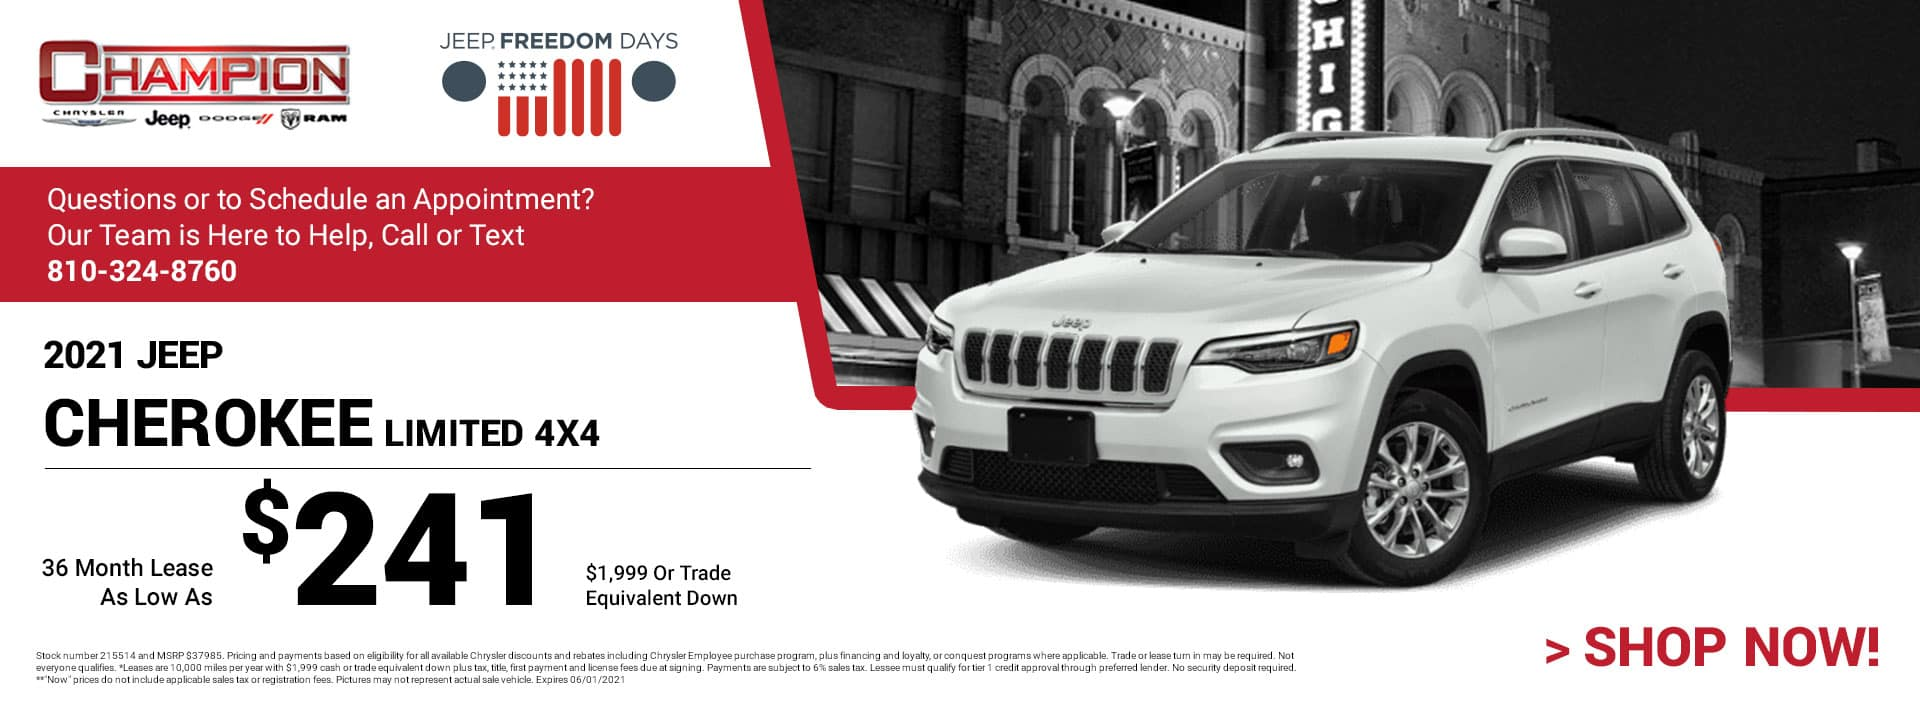 2021 Jeep Cherokee Limited 4x4 215514 $37,985 $1,999 or Trade Equivalent Down 36 $241